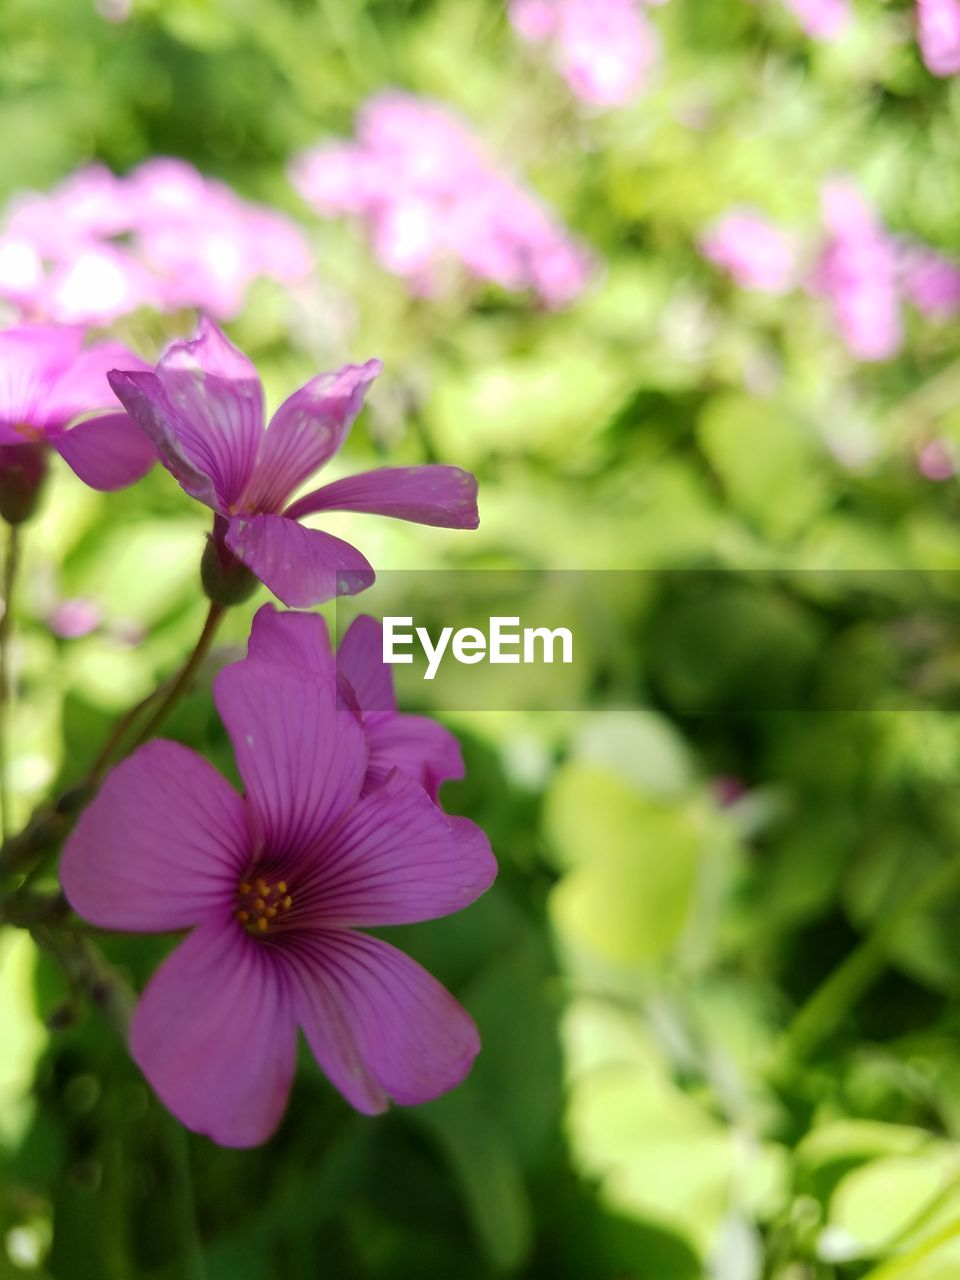 flowering plant, flower, plant, fragility, vulnerability, freshness, beauty in nature, petal, inflorescence, flower head, growth, close-up, no people, pink color, focus on foreground, day, nature, purple, outdoors, park - man made space